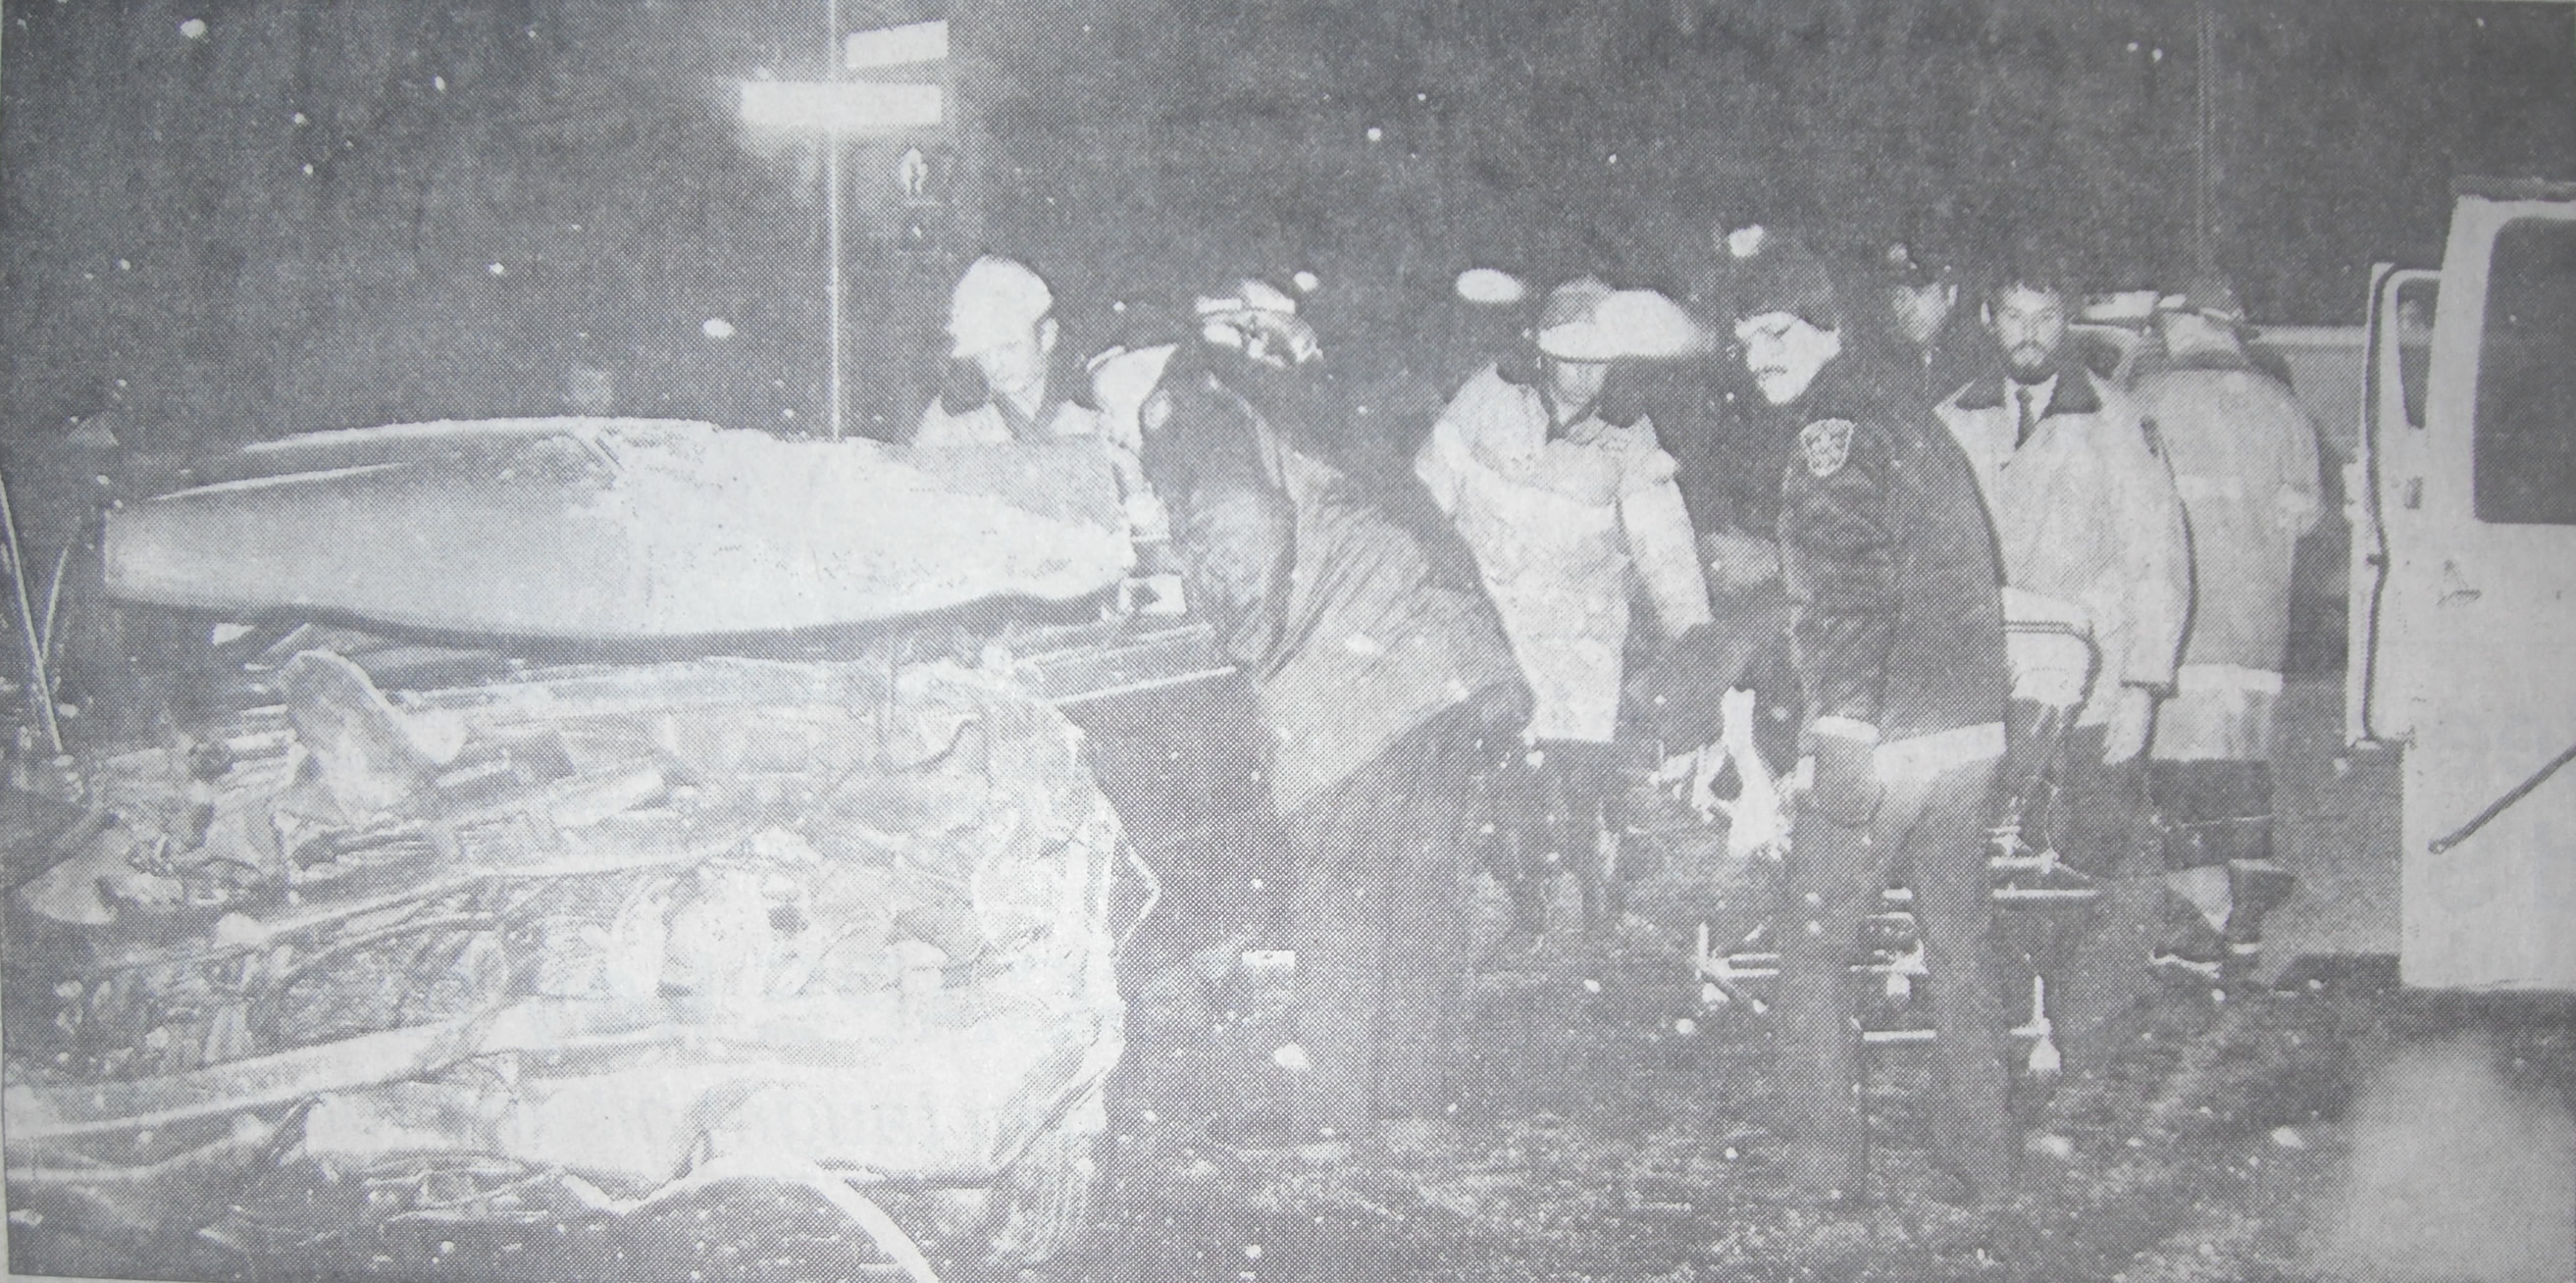 Fire, EMS and Police personnel working to free trapped persons from wreckage.